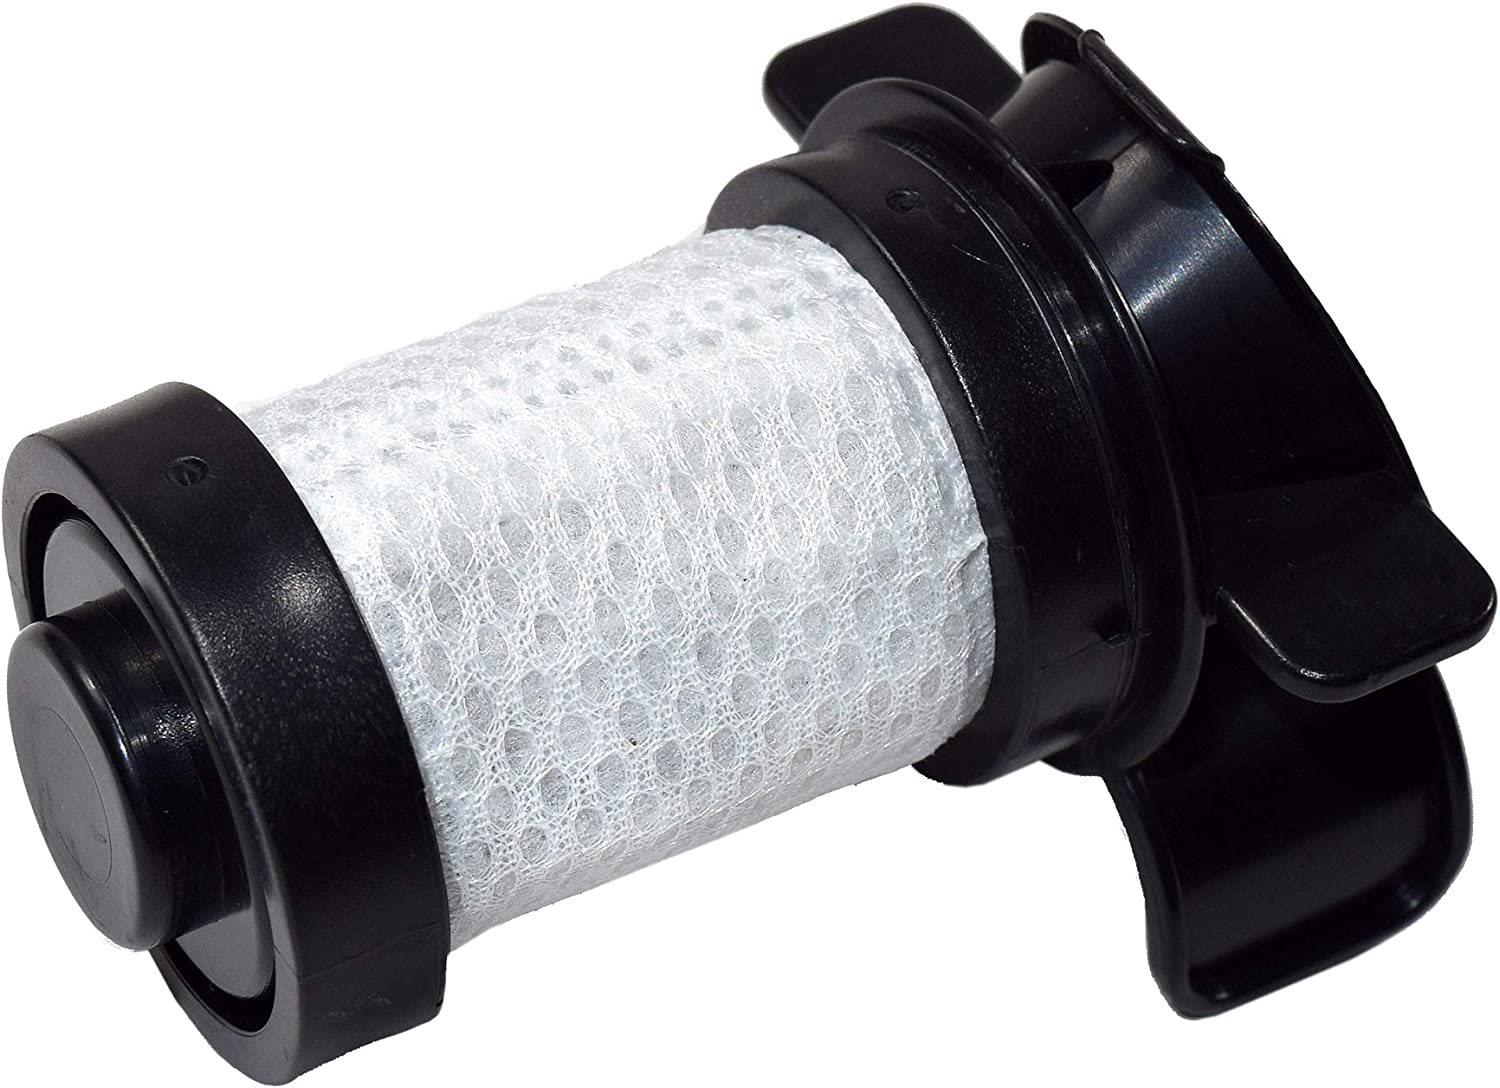 HQRP Pre-motor Filter for Shark IONFlex DuoClean IF200 IF260 Cordless Stick Vacuums plus Coaster IR70 IF130 IF250